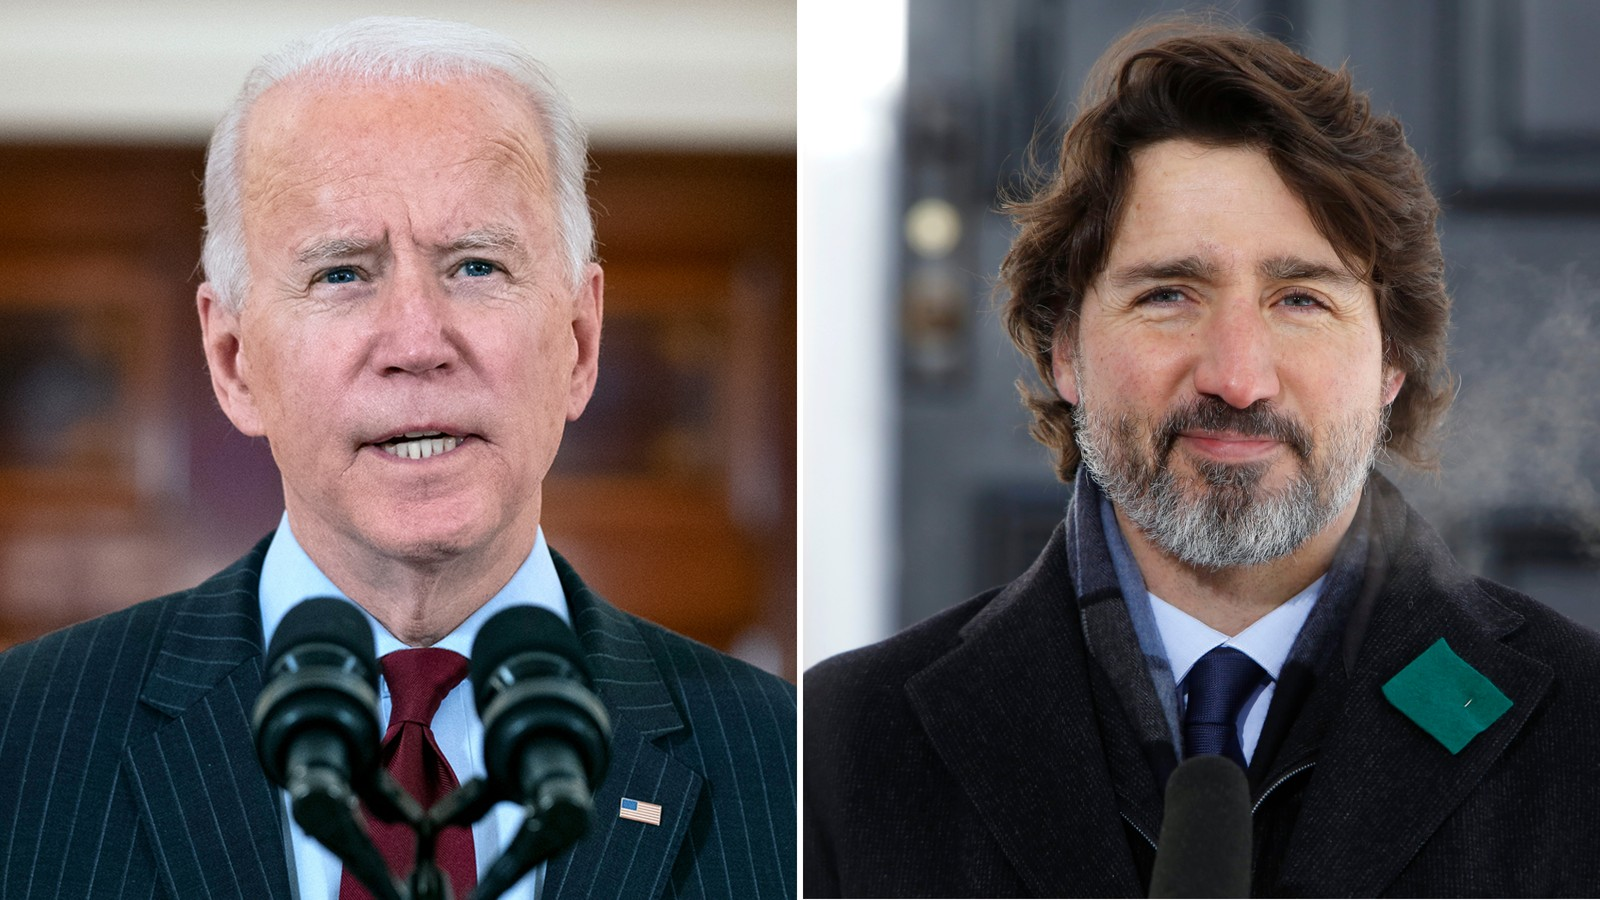 Biden and Trudeau stress US-Canadian bonds in virtual meeting